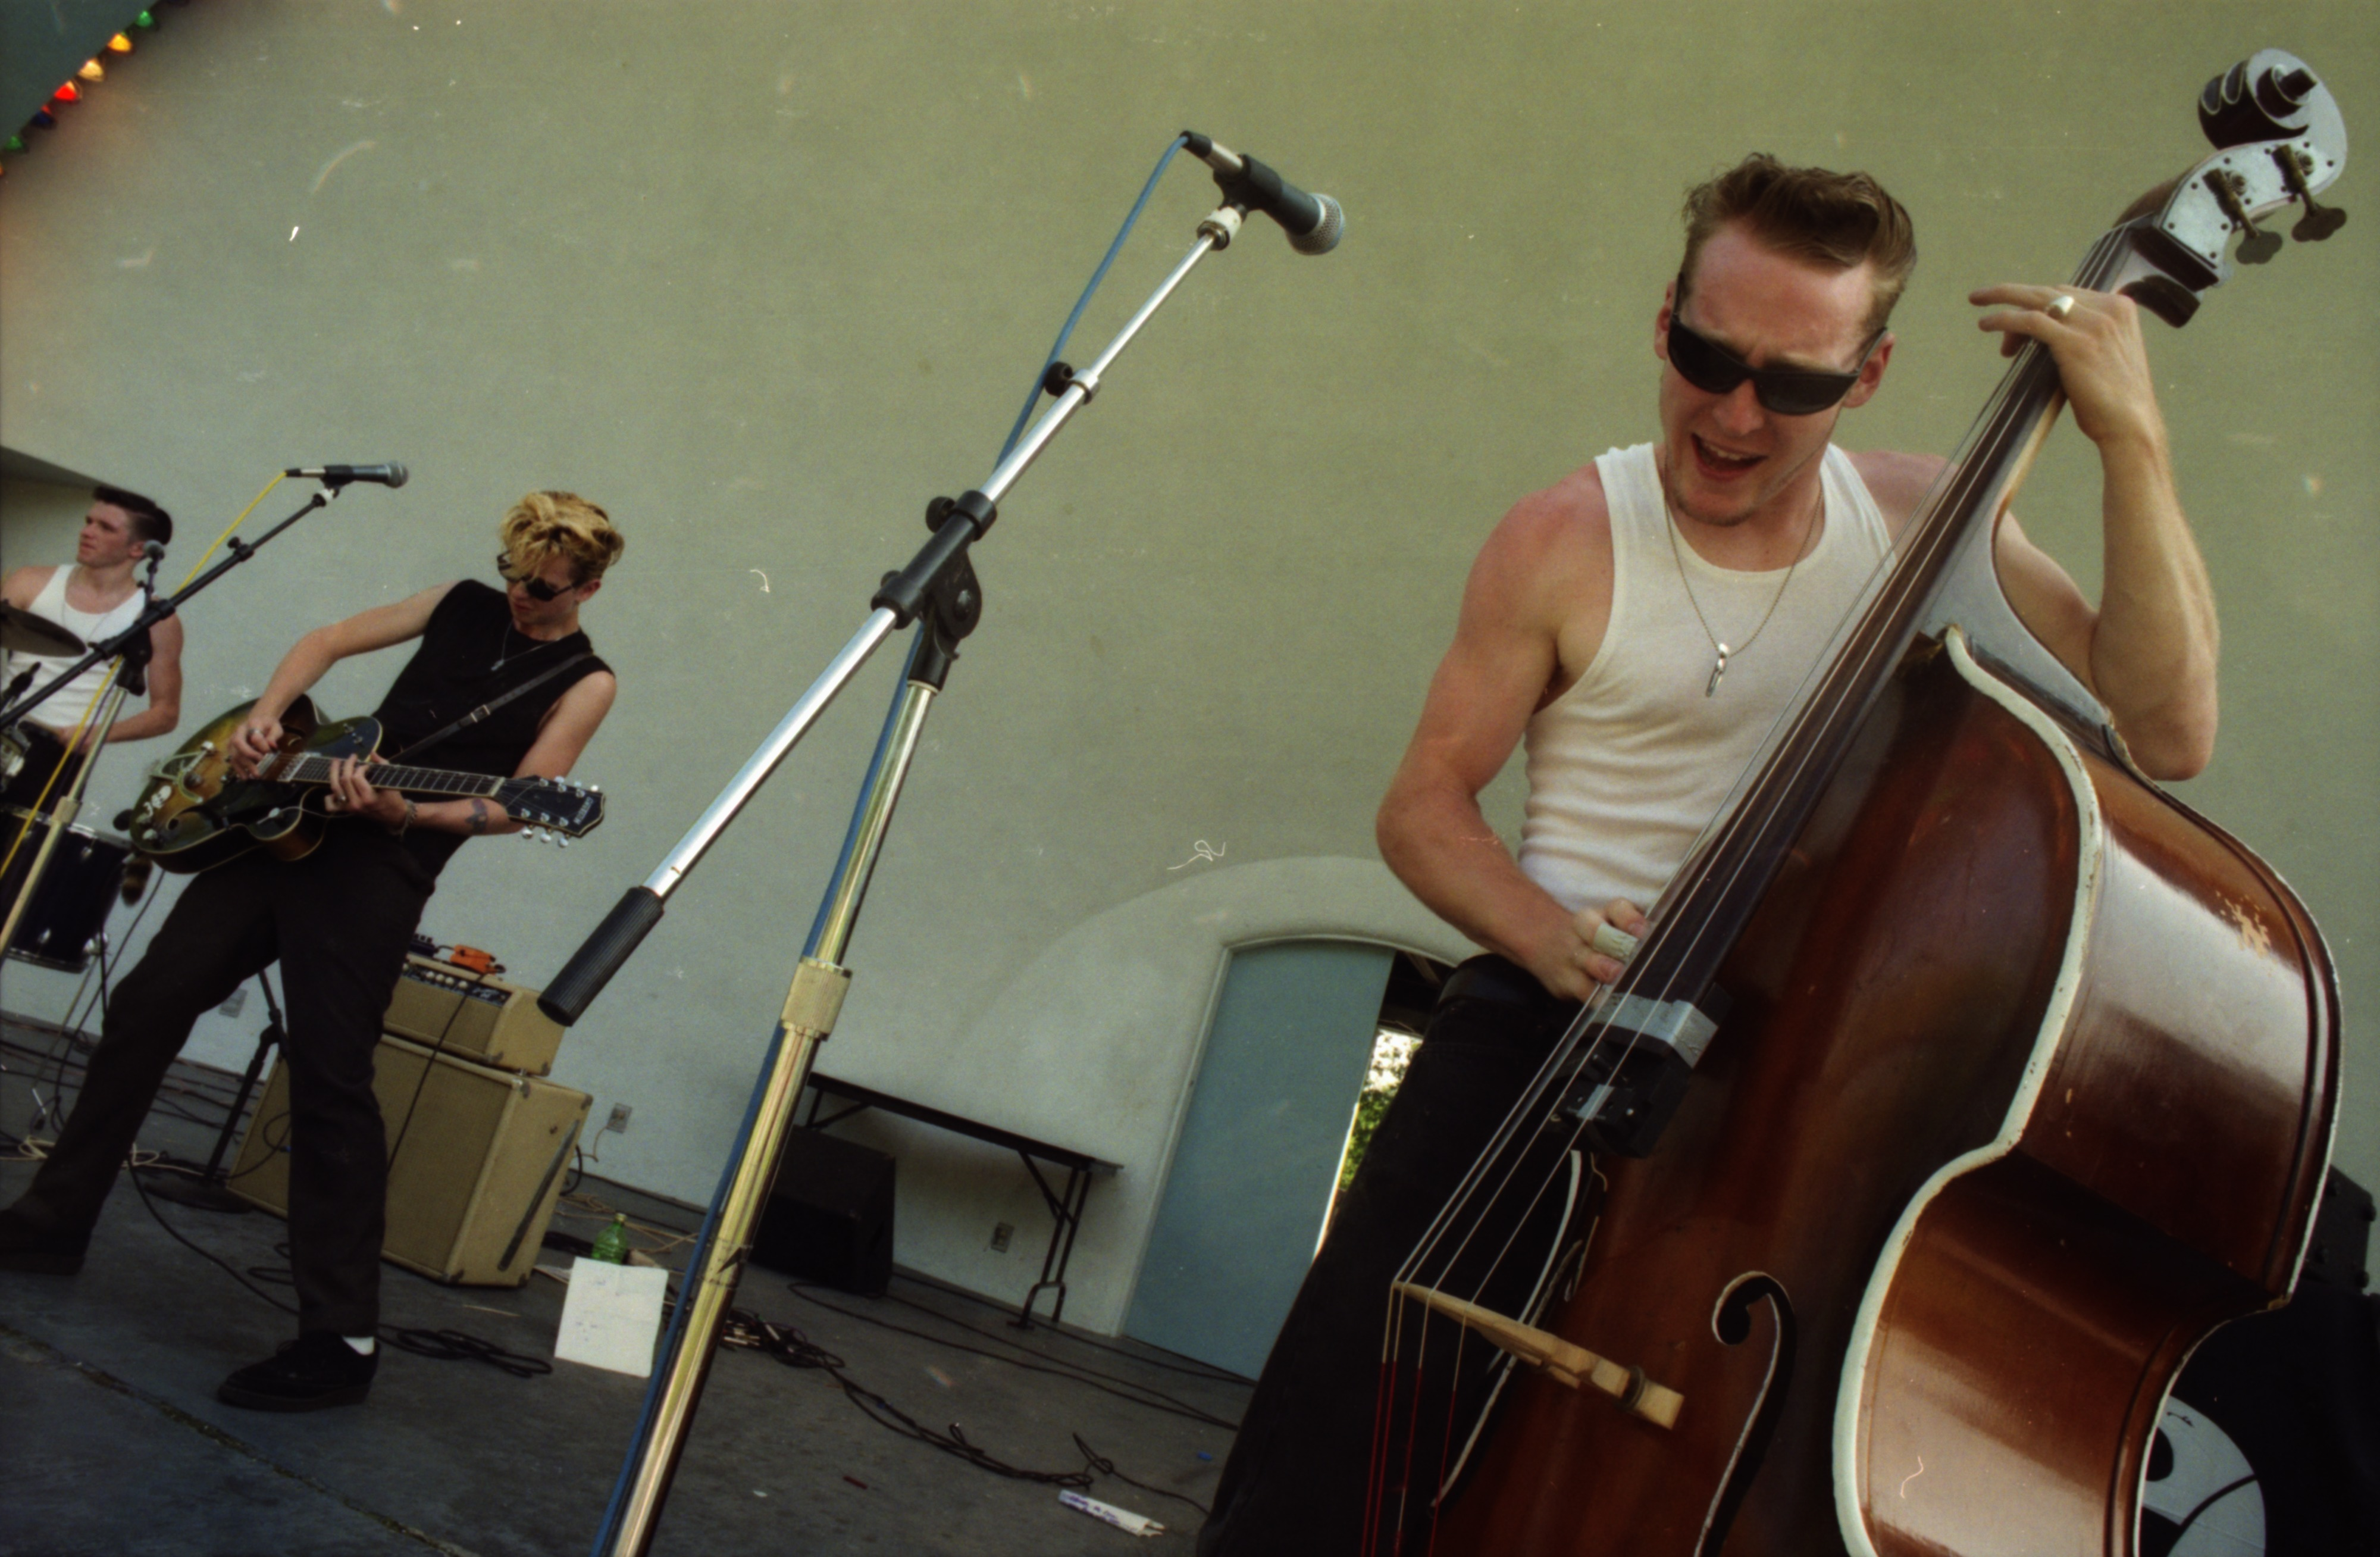 Rob Ramsburg performs with Lucky Haskins performs at Comstock, West Park, June 13, 1996 image